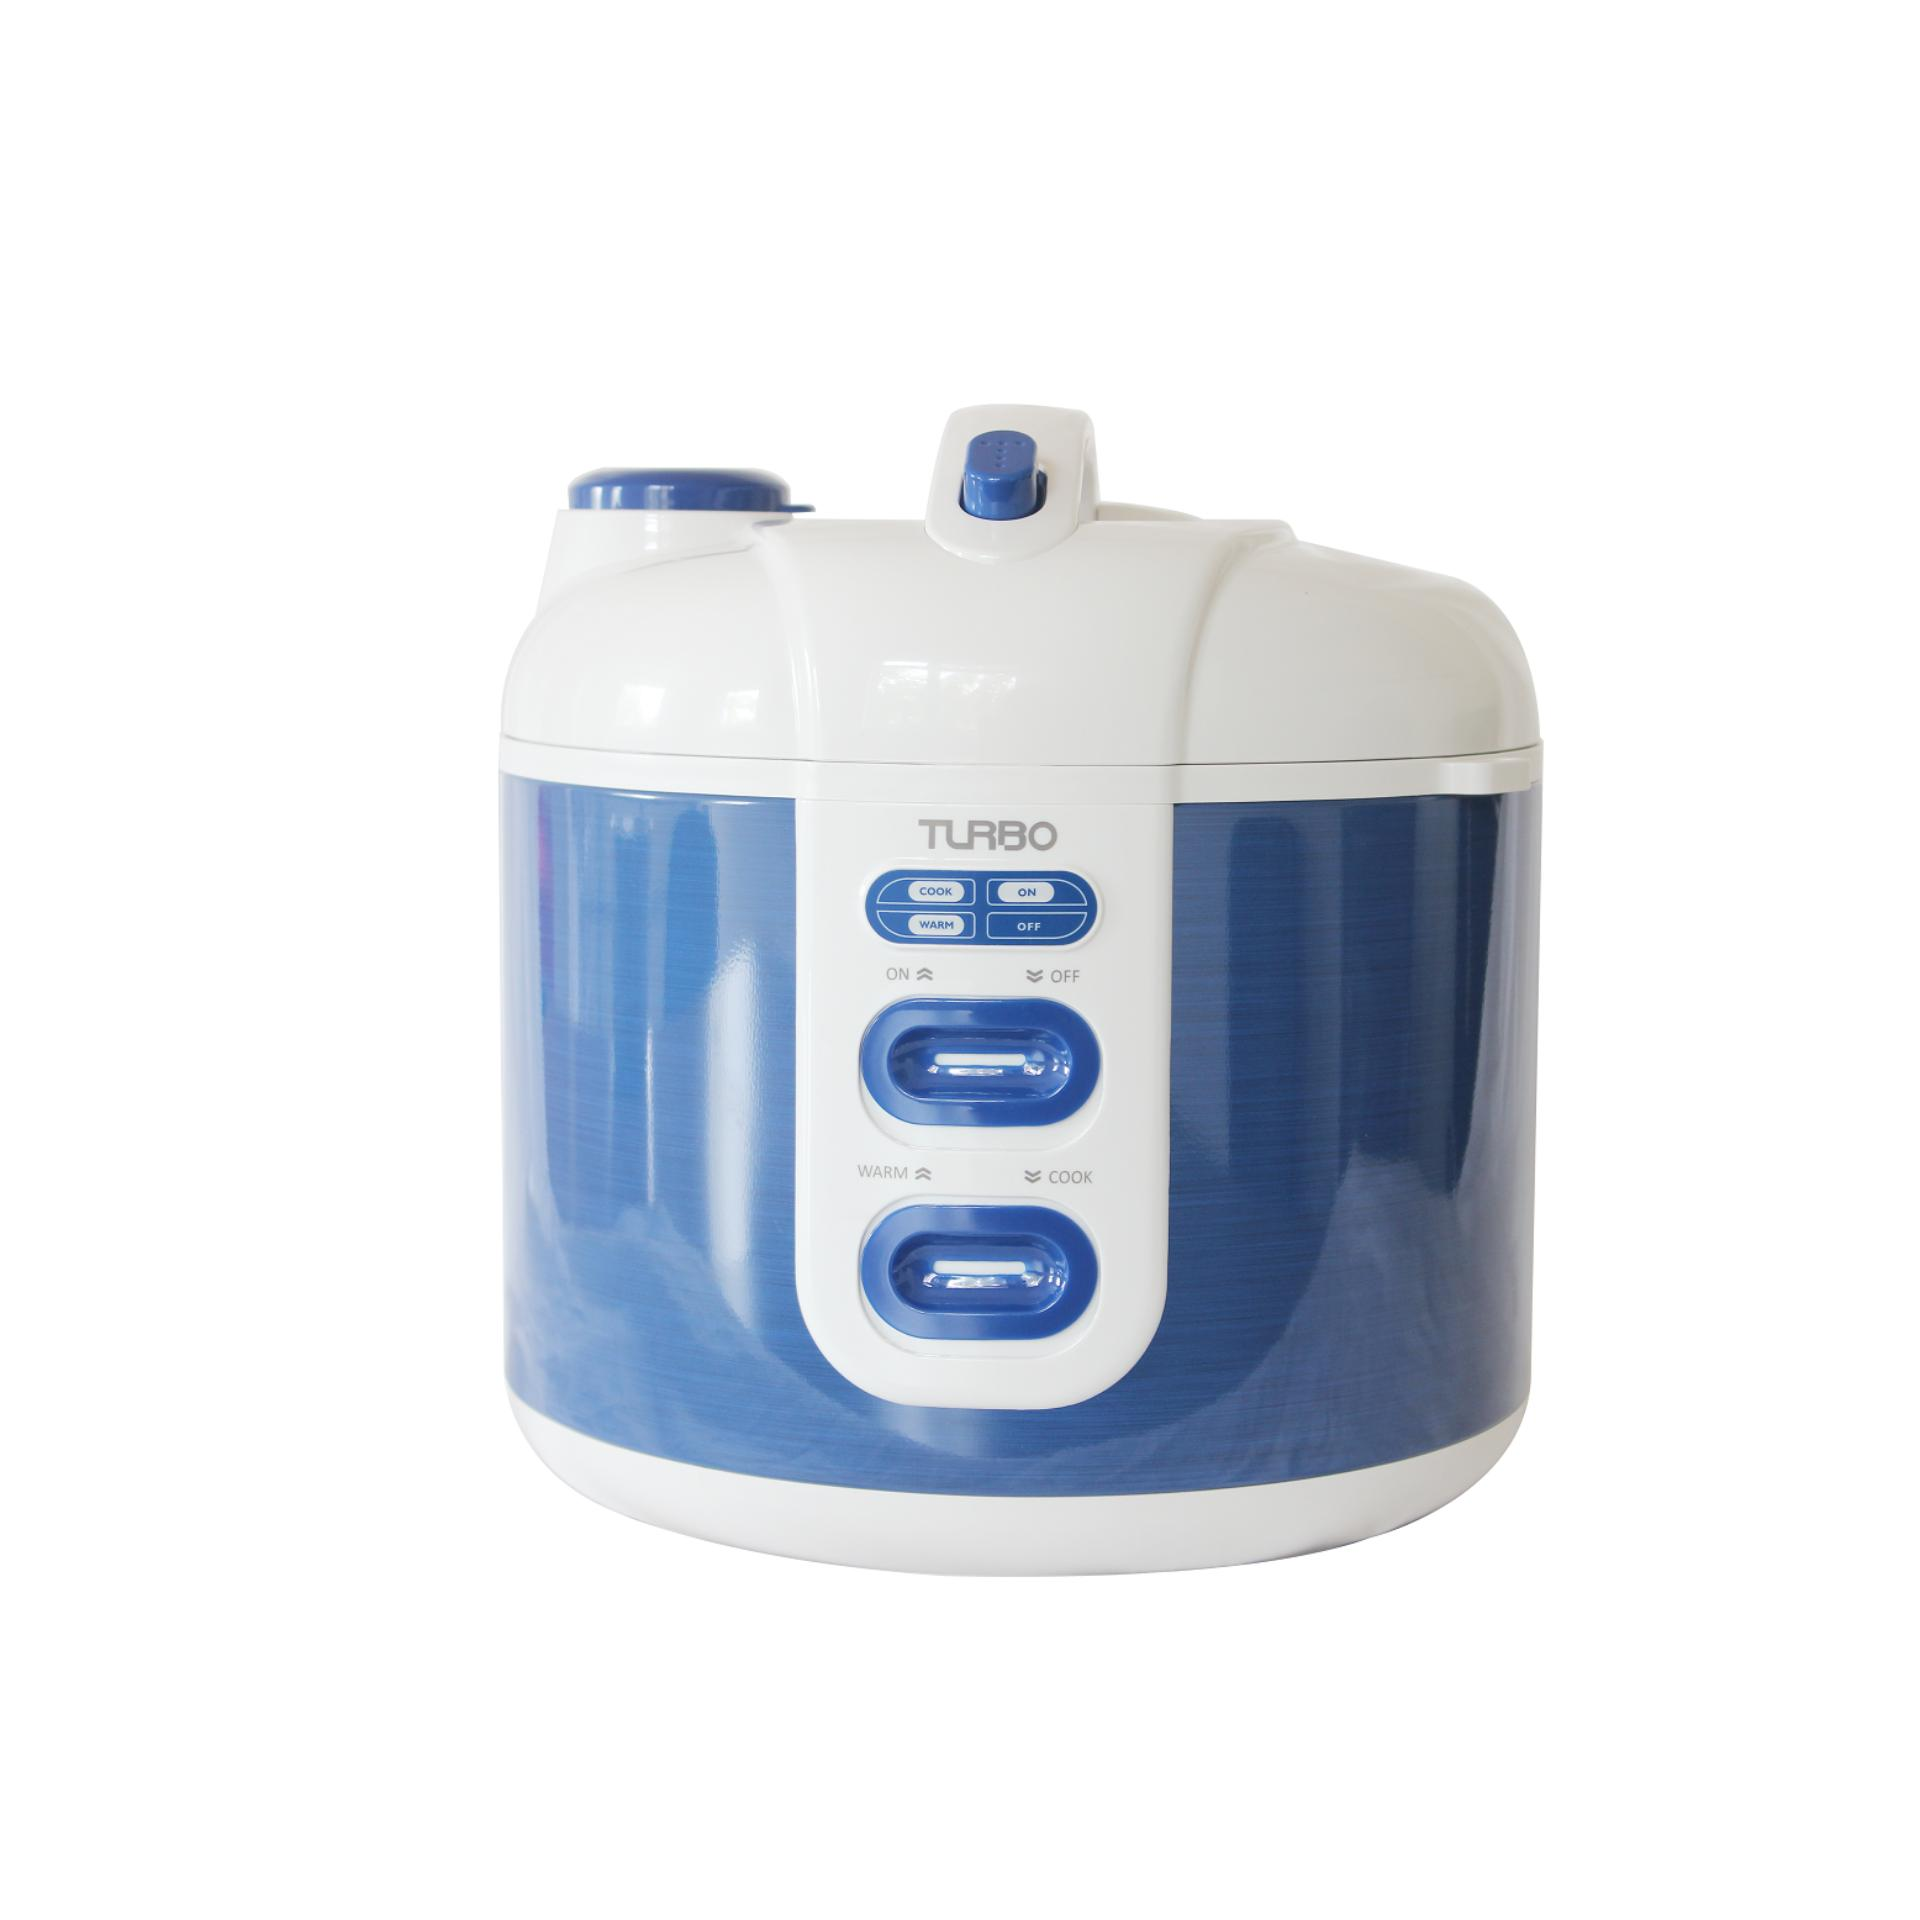 Miyako Mcm528 Rice Cooker Magic Com Jar Penanak Nasi 18 L Abu Mcm 508 Liter Home